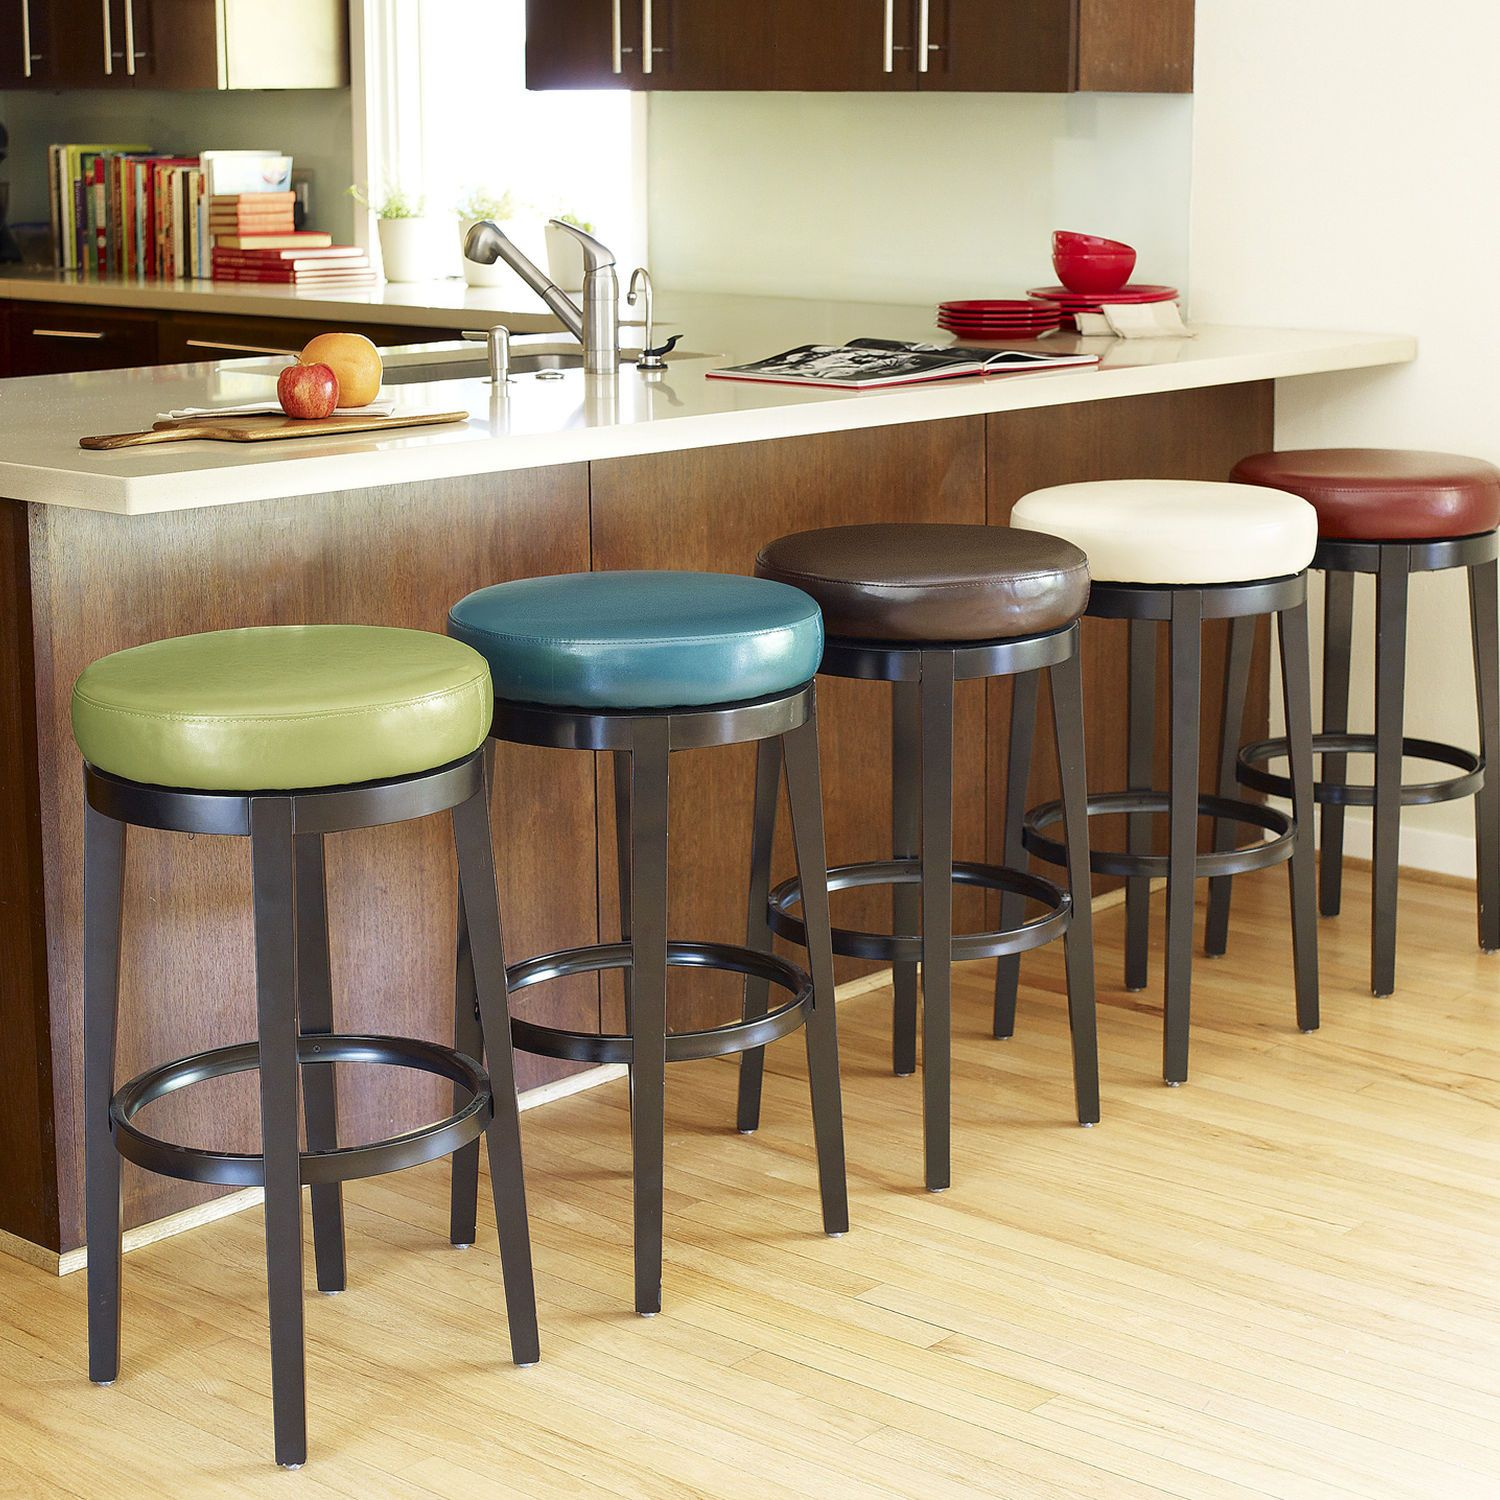 Stratmoor Teal Swivel Counter Stool Dining Room Furniture Sets